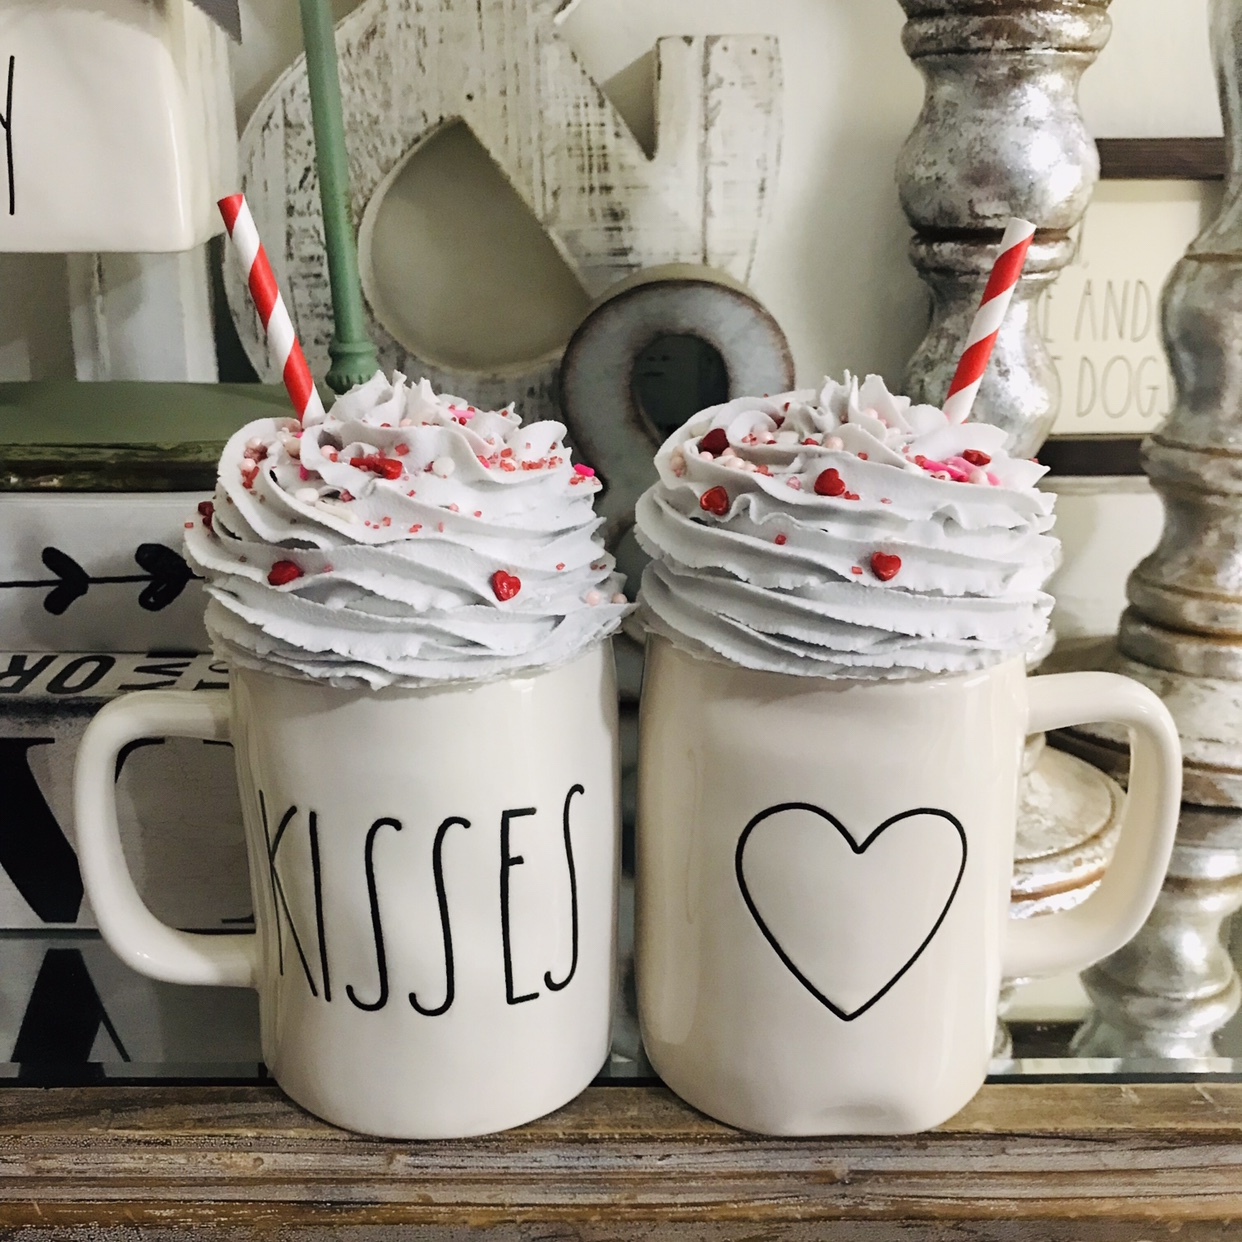 2 Fake Whipped Cream Mug Toppers With Real Sprinkles Depop